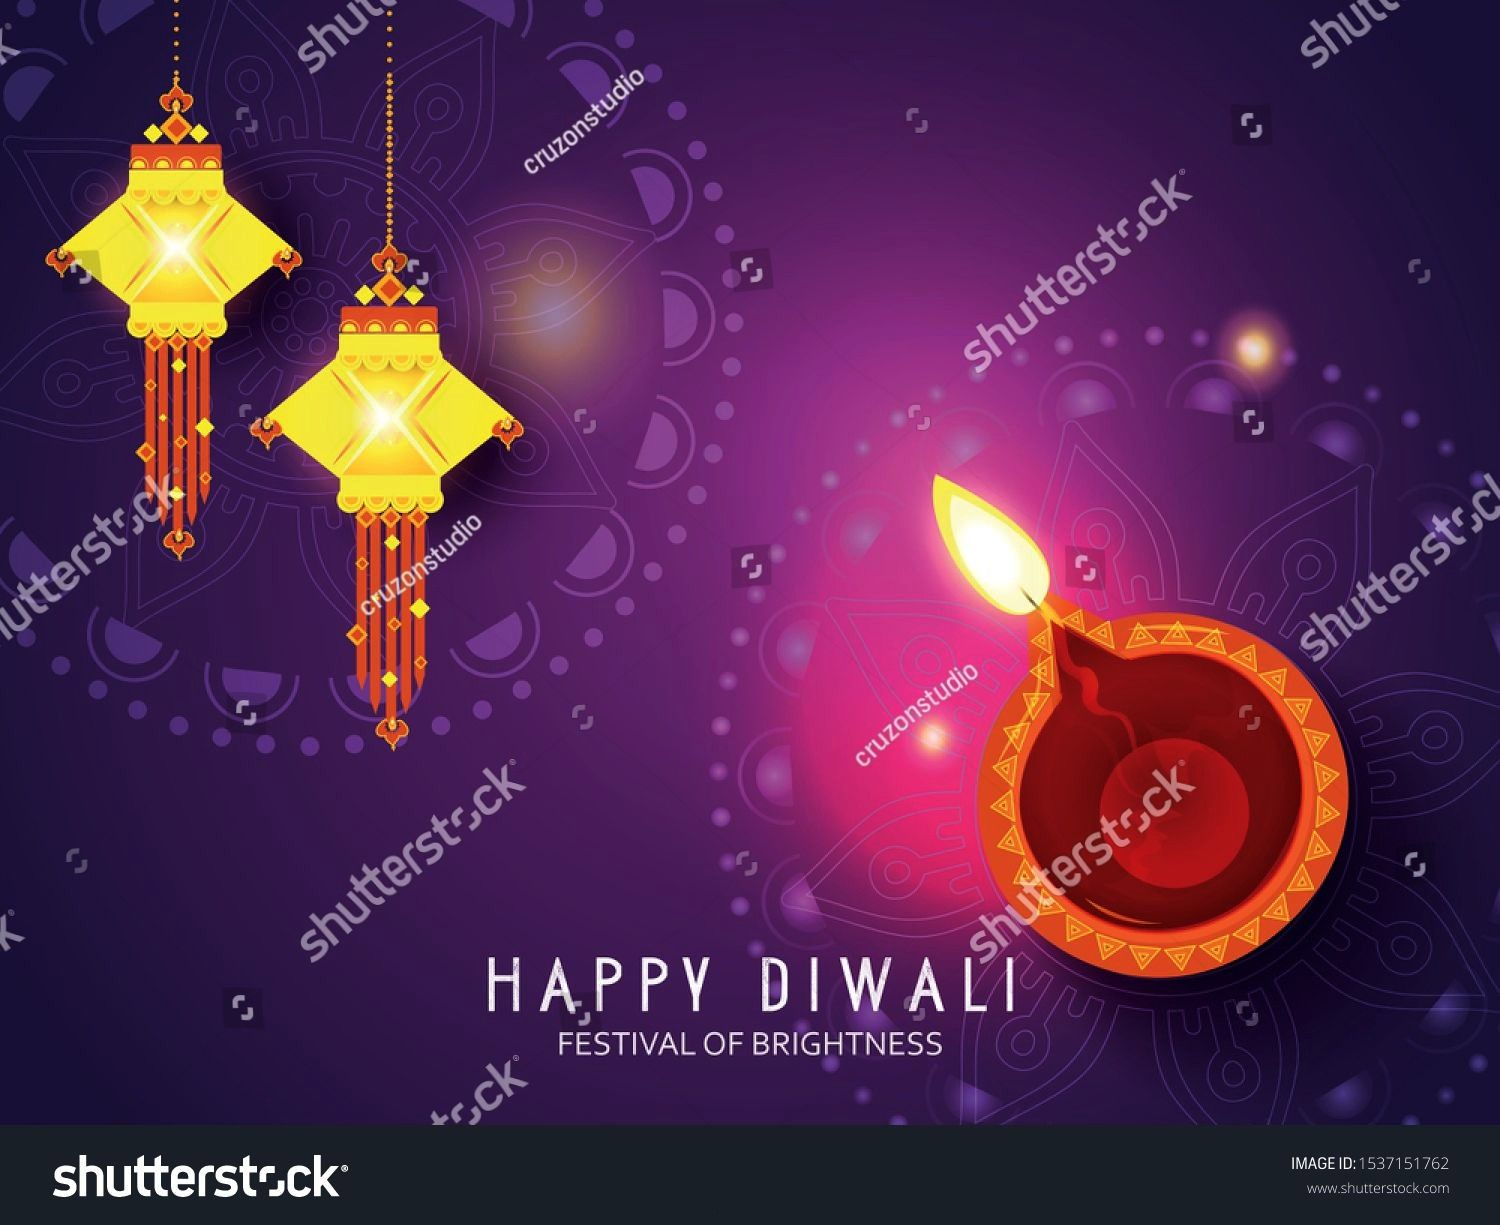 illustration of Diwali festival with stylish beautiful oil lamp and Diwali elements Diwali SALE Diwali Special offer background Vector illustration of Diwali festival wit...